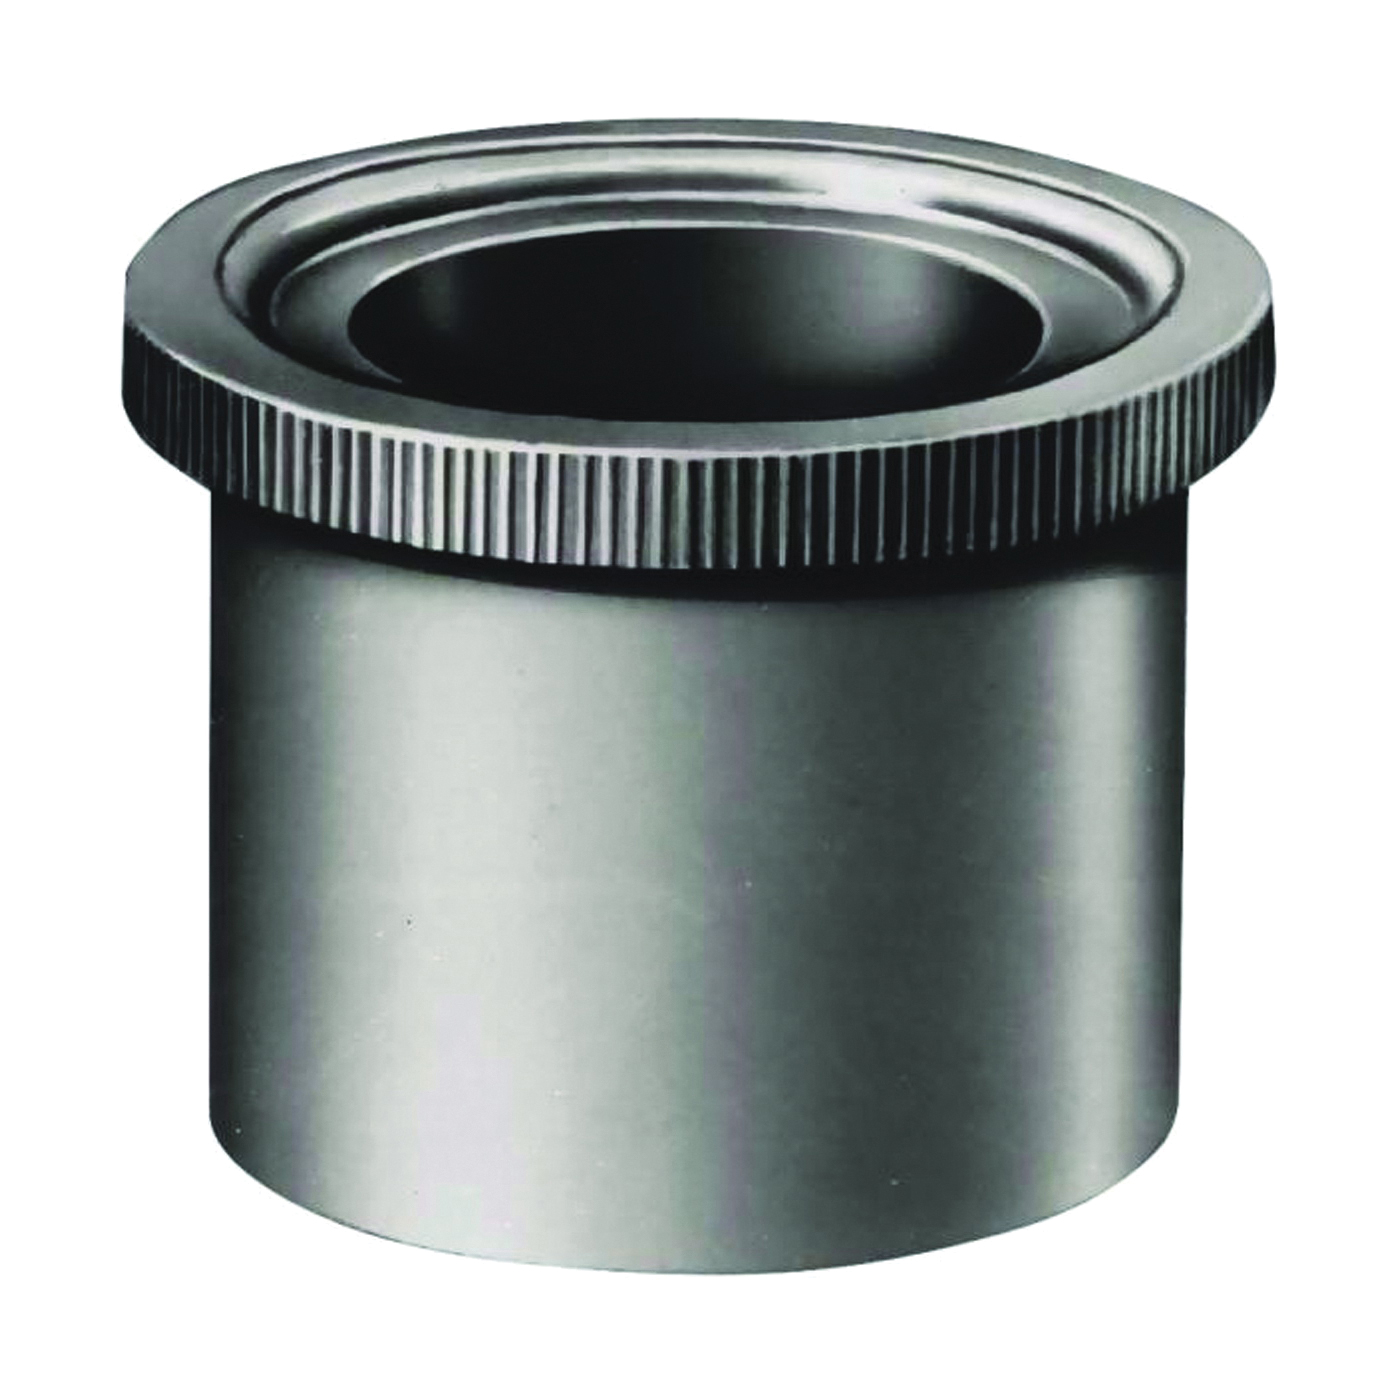 Picture of Carlon E950FE-CTN Conduit Bushing, 1 x 3/4 in Trade, Bell x Spigot, 1-11/32 in Dia, 1-11/32 in L, PVC, Gray